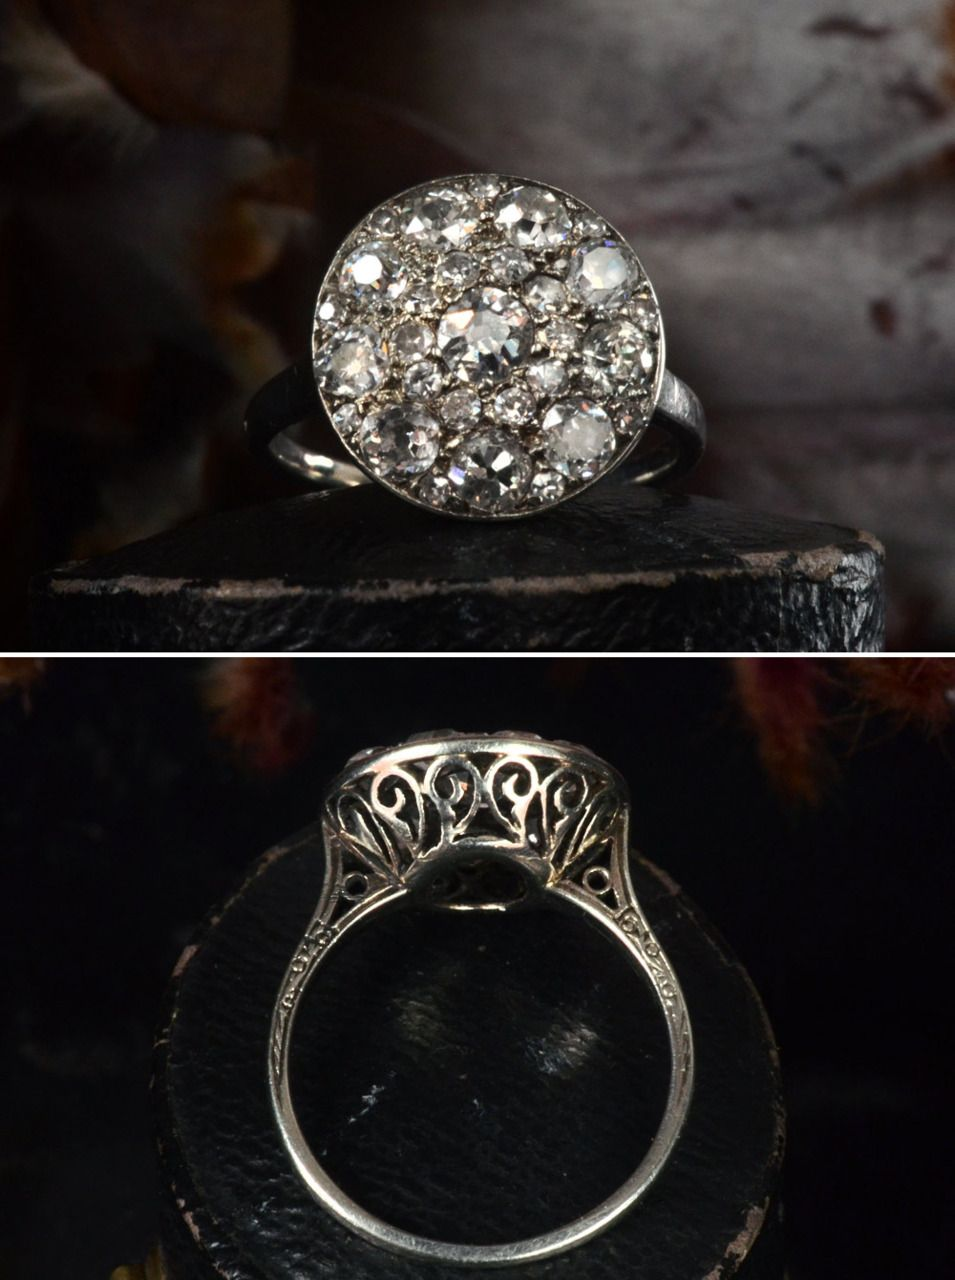 Early 1900s French Platinum Filigree Cluster Ring #engagementring #vintage  #antique